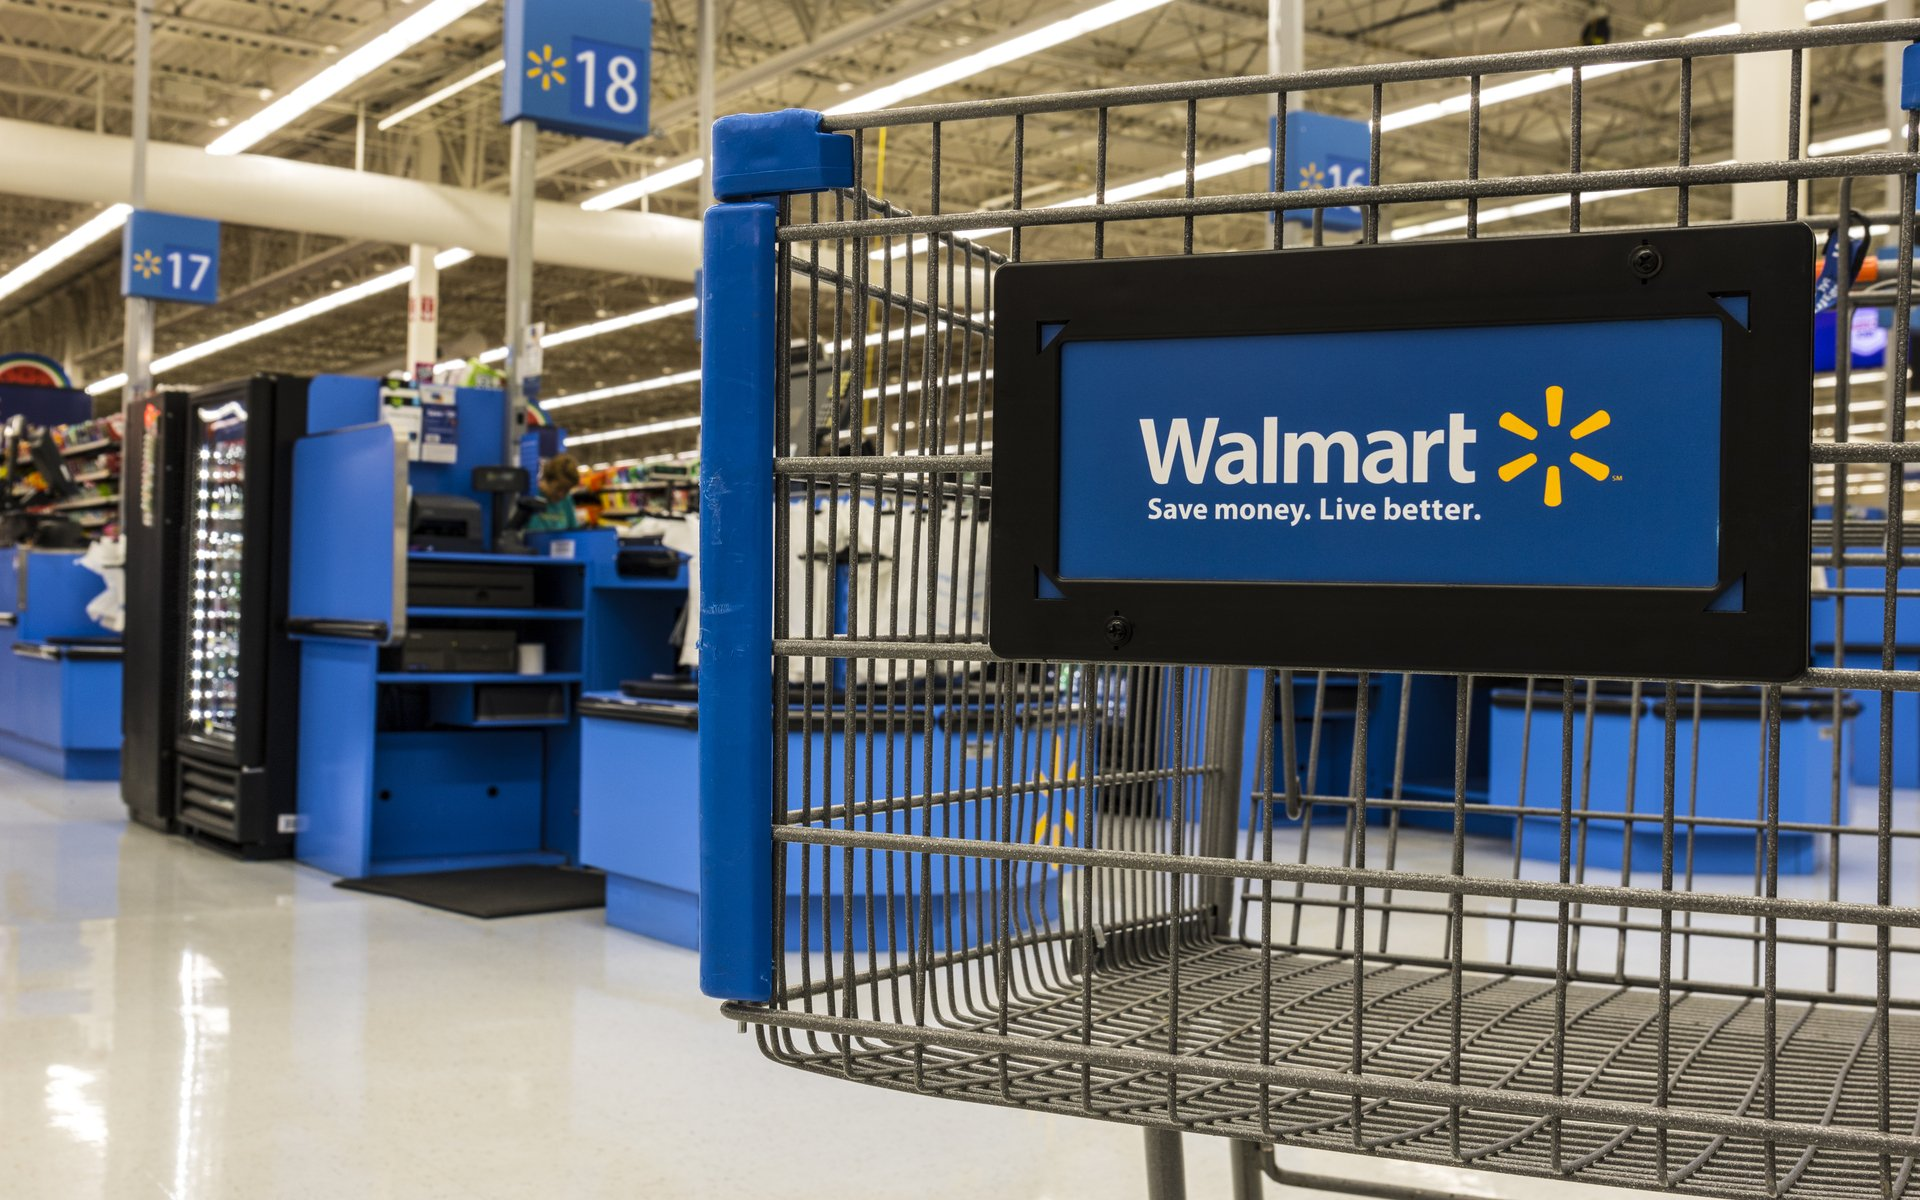 does walmart accept cryptocurrency